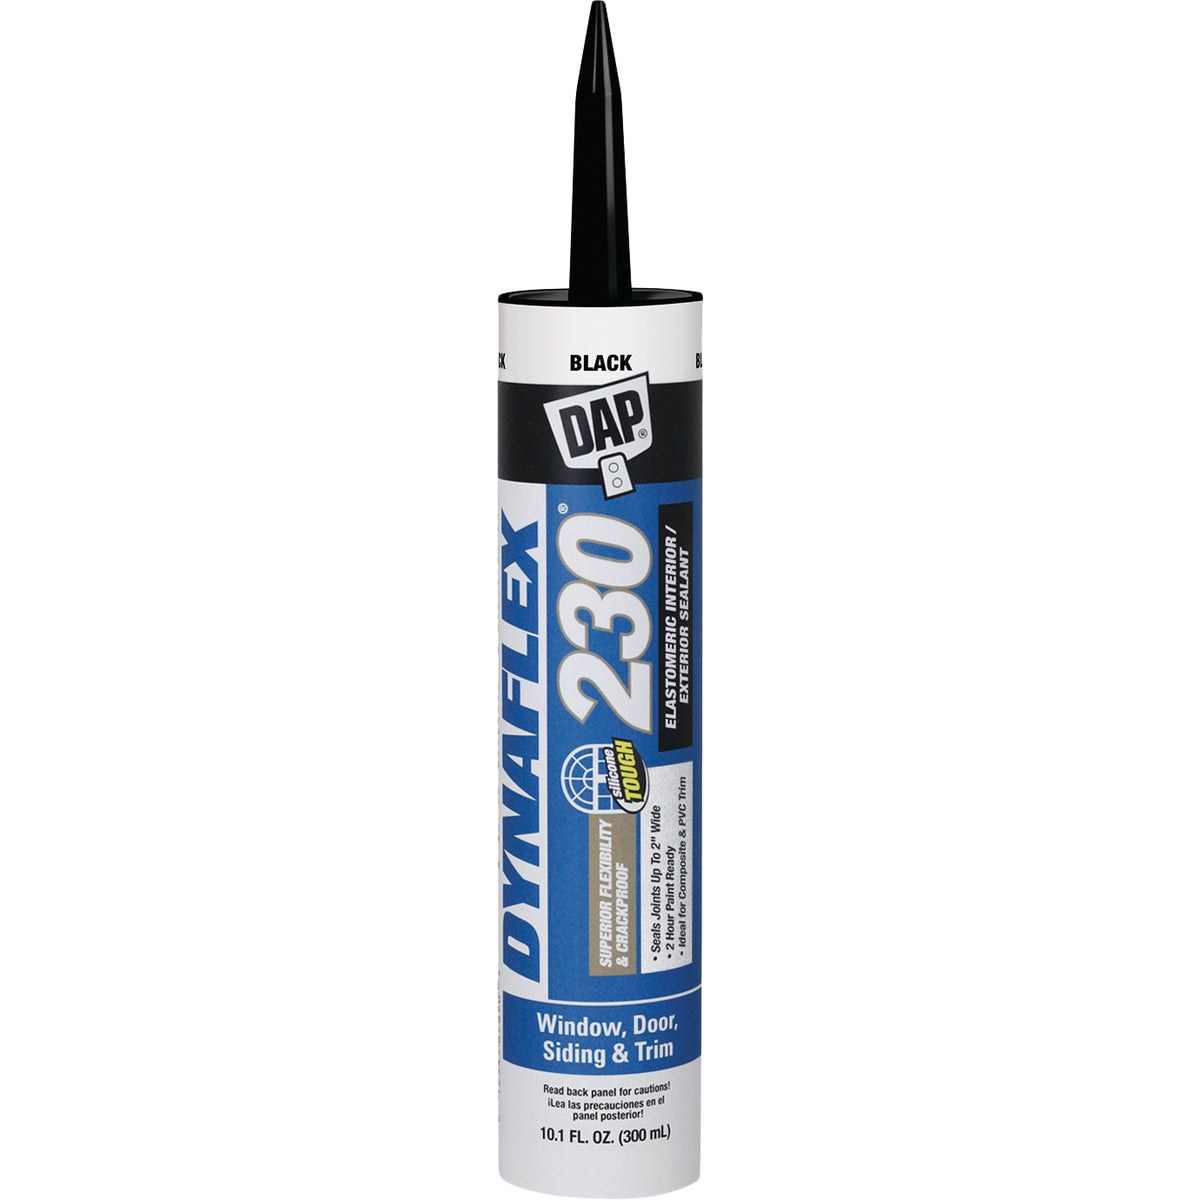 BLK DYNAFLEX LTX SEALANT - 18280 by Dap Inc